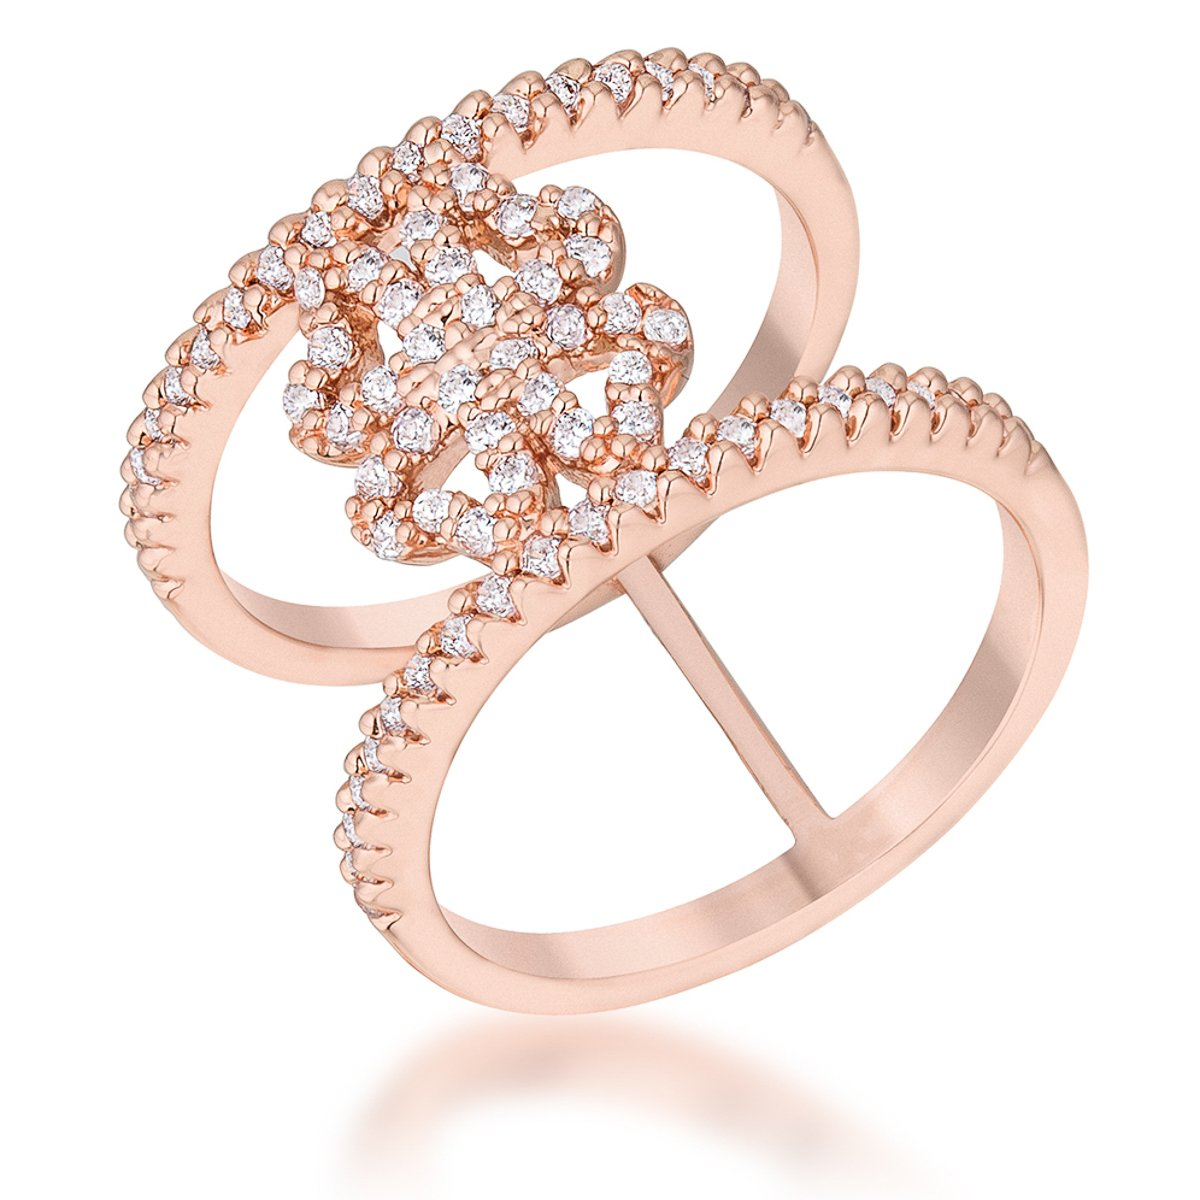 Lauren 0.4ct CZ Rose Gold Delicate Clover Wrap Ring - R08462A-C01